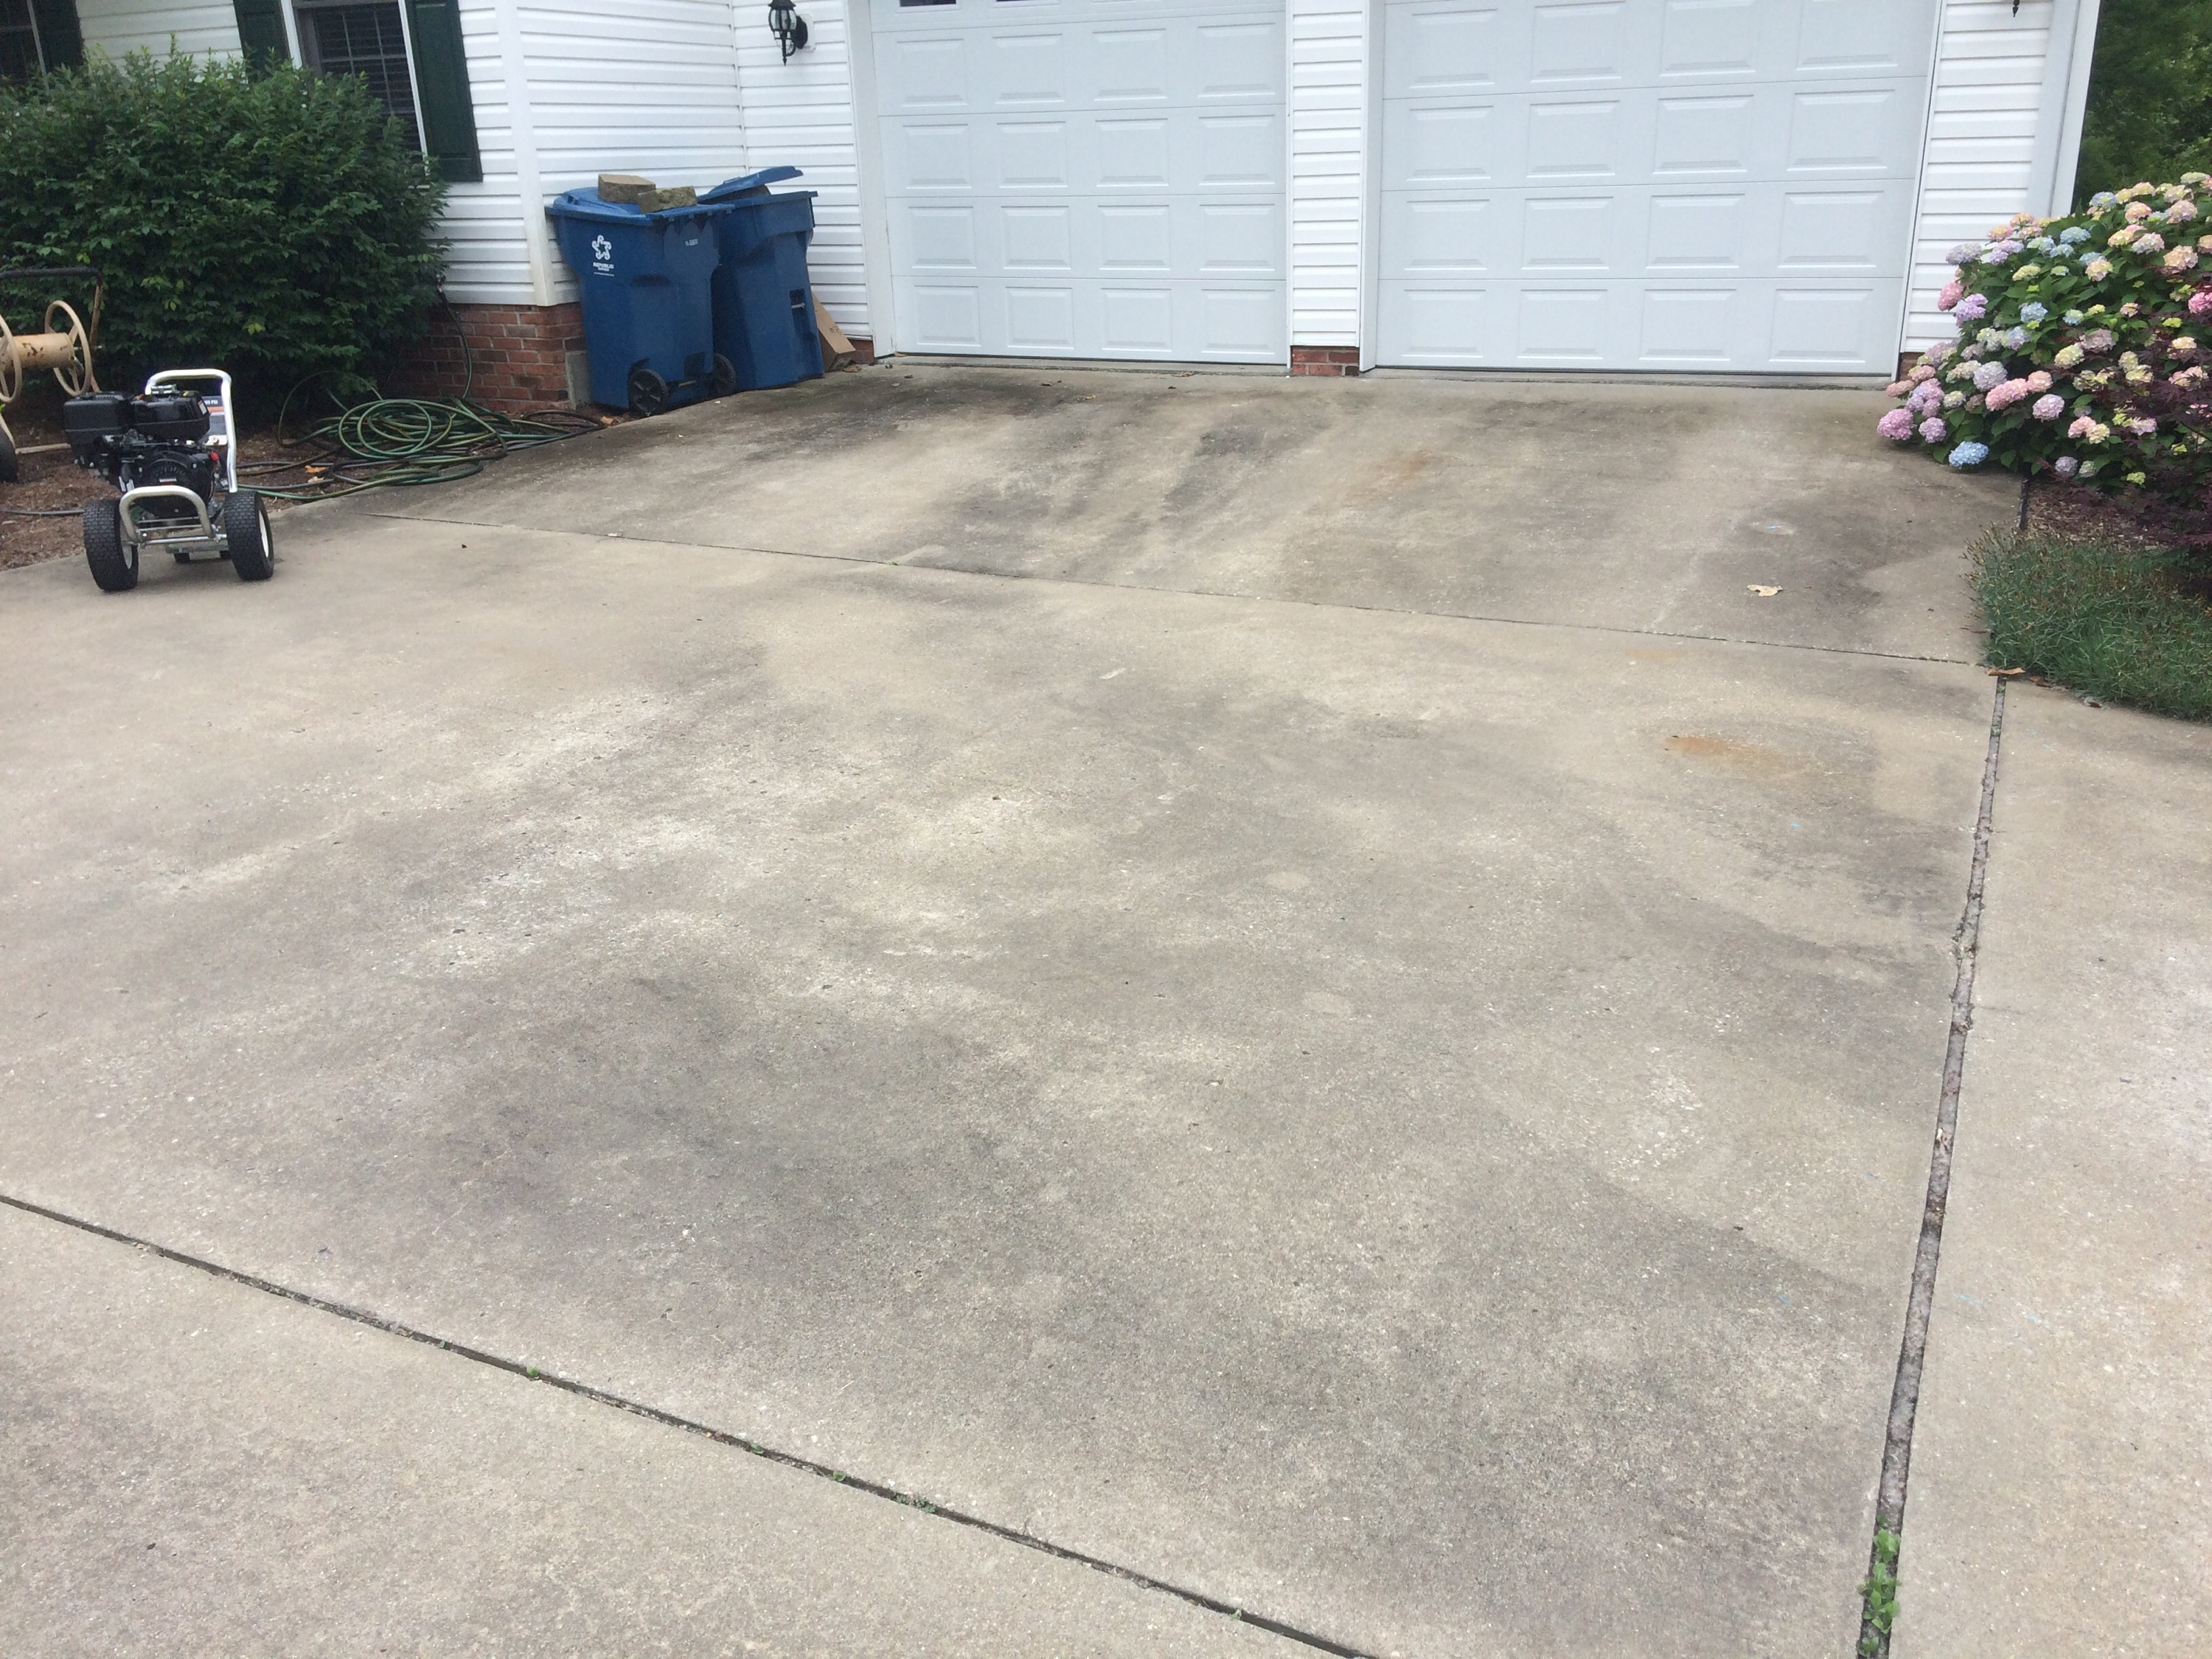 Concrete driveway cleaning in carterville il for Cement driveway cleaner